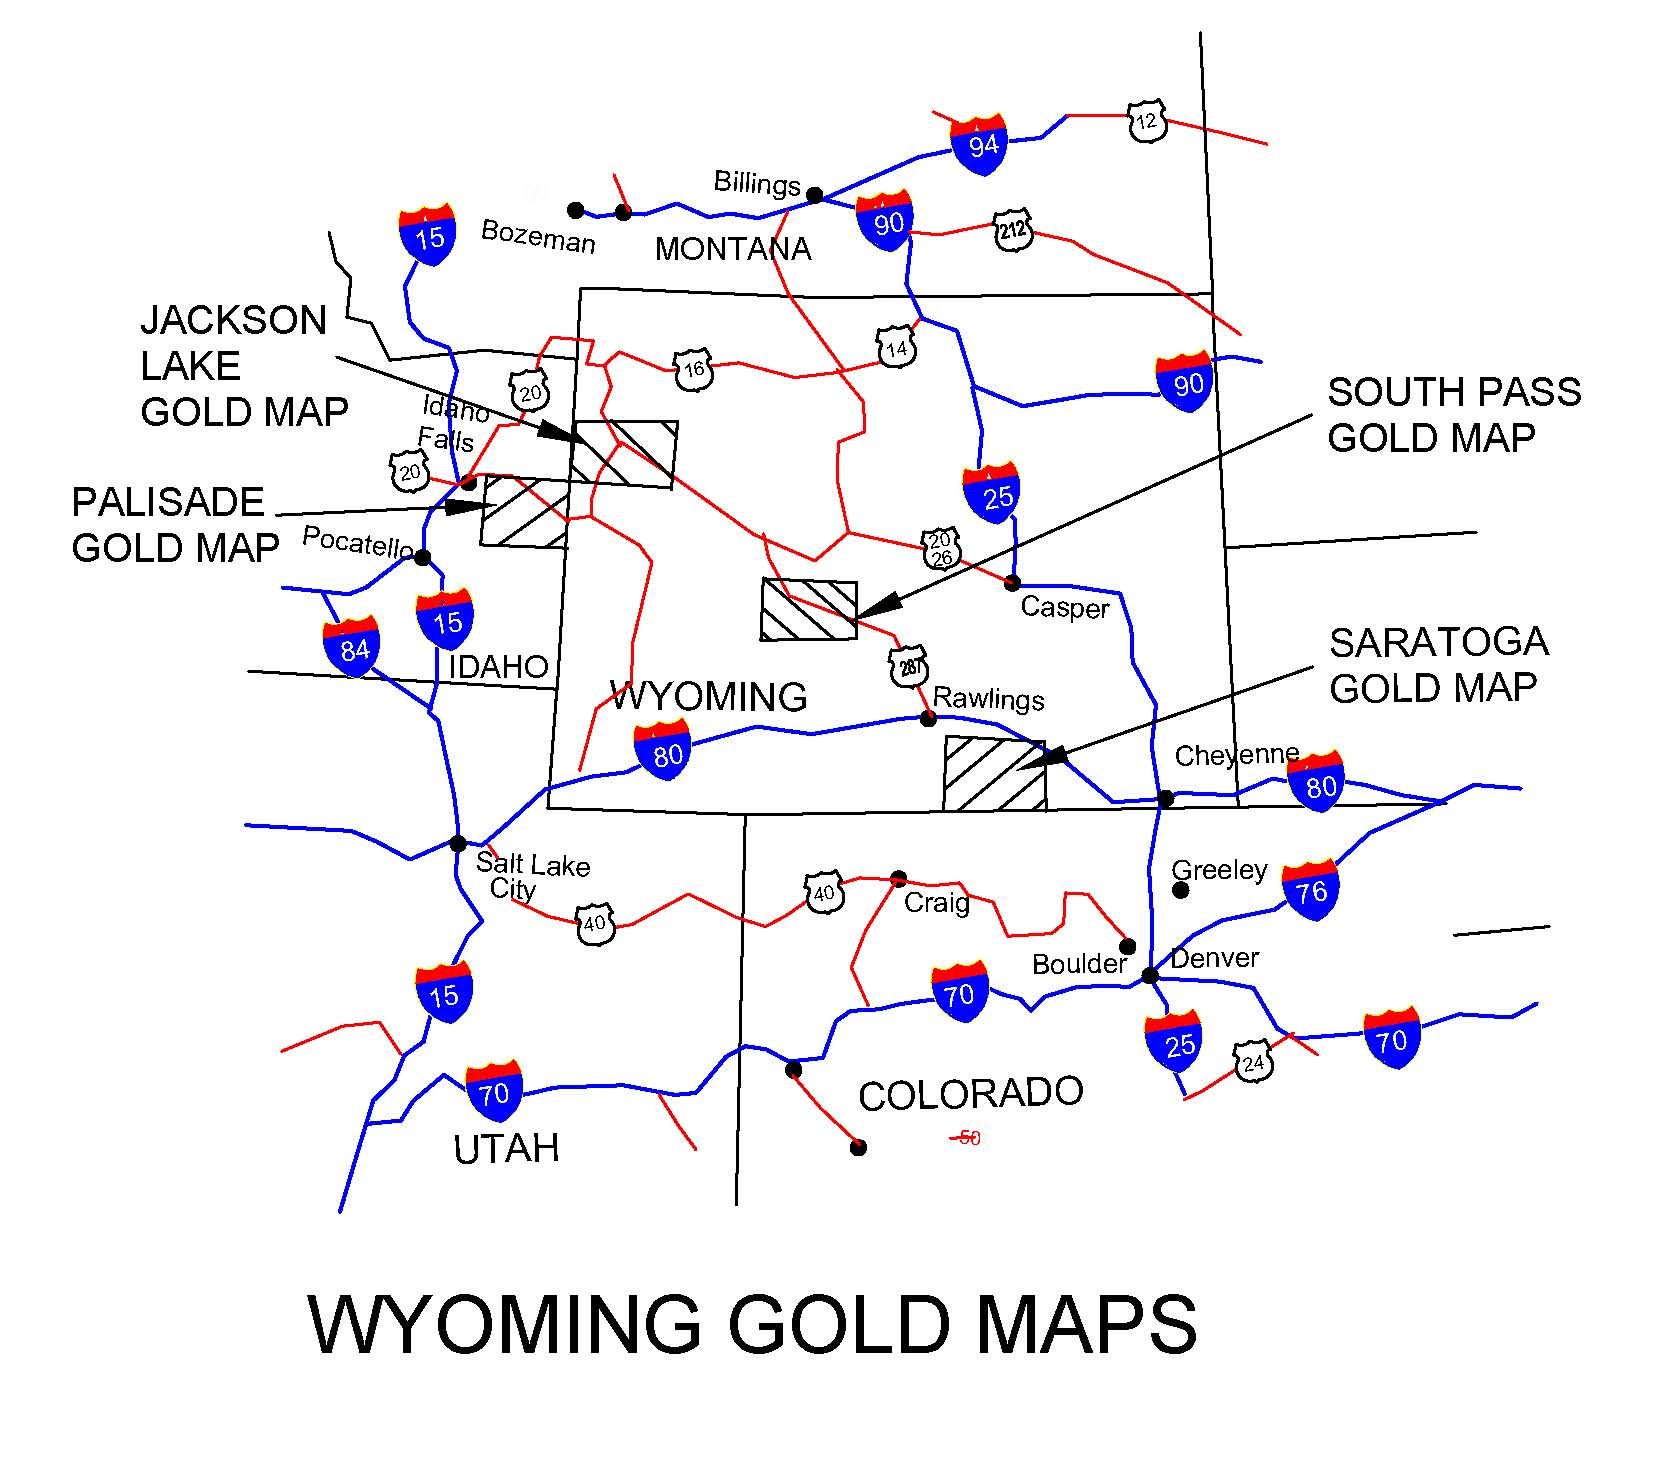 Wyoming Gold Maps Gold Placers And Gold Panning In Wyoming Gold